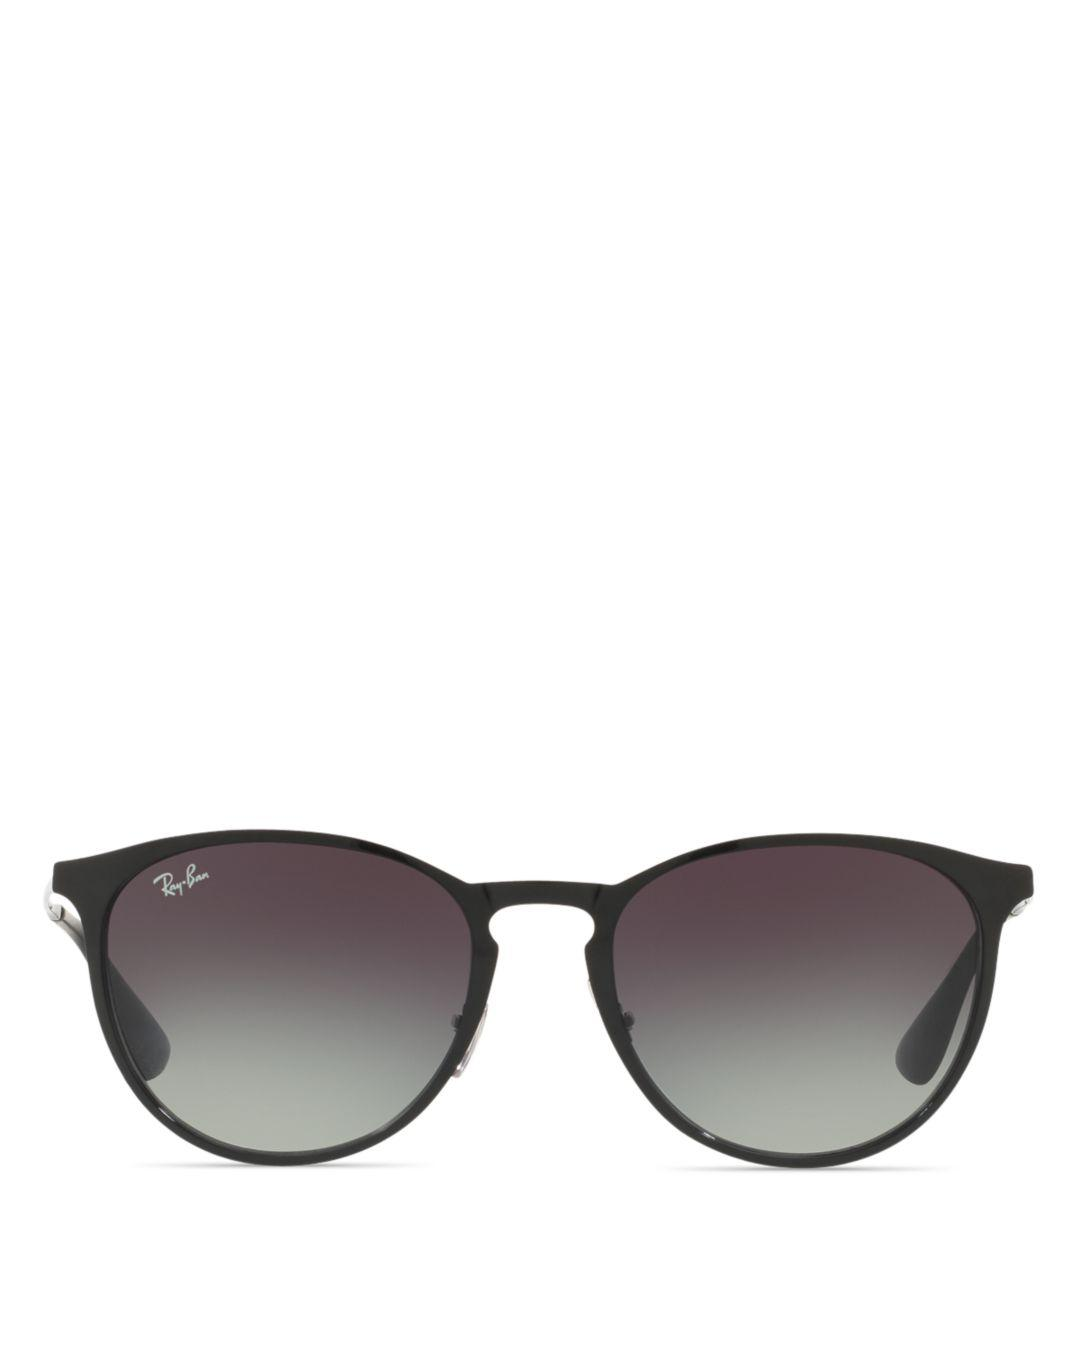 8a5e16a7bd Lyst - Ray-Ban 54mm in Black